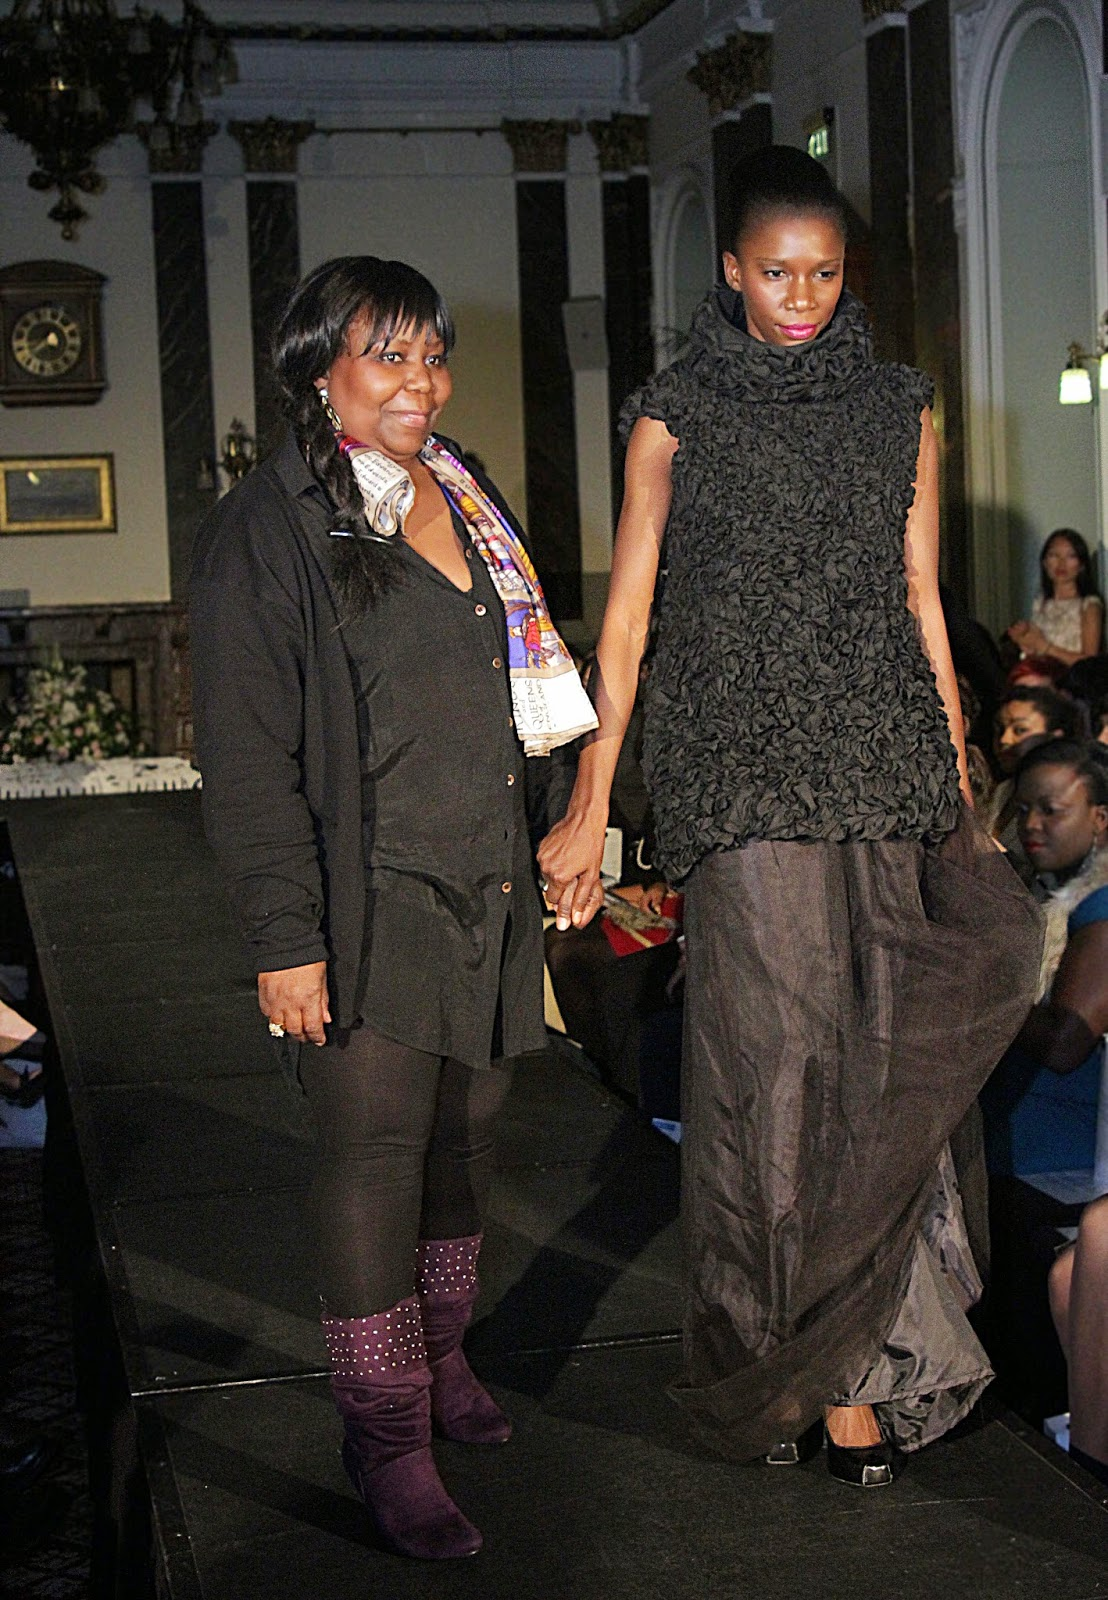 Koyawo London at Birmingham Fashion Week 2014